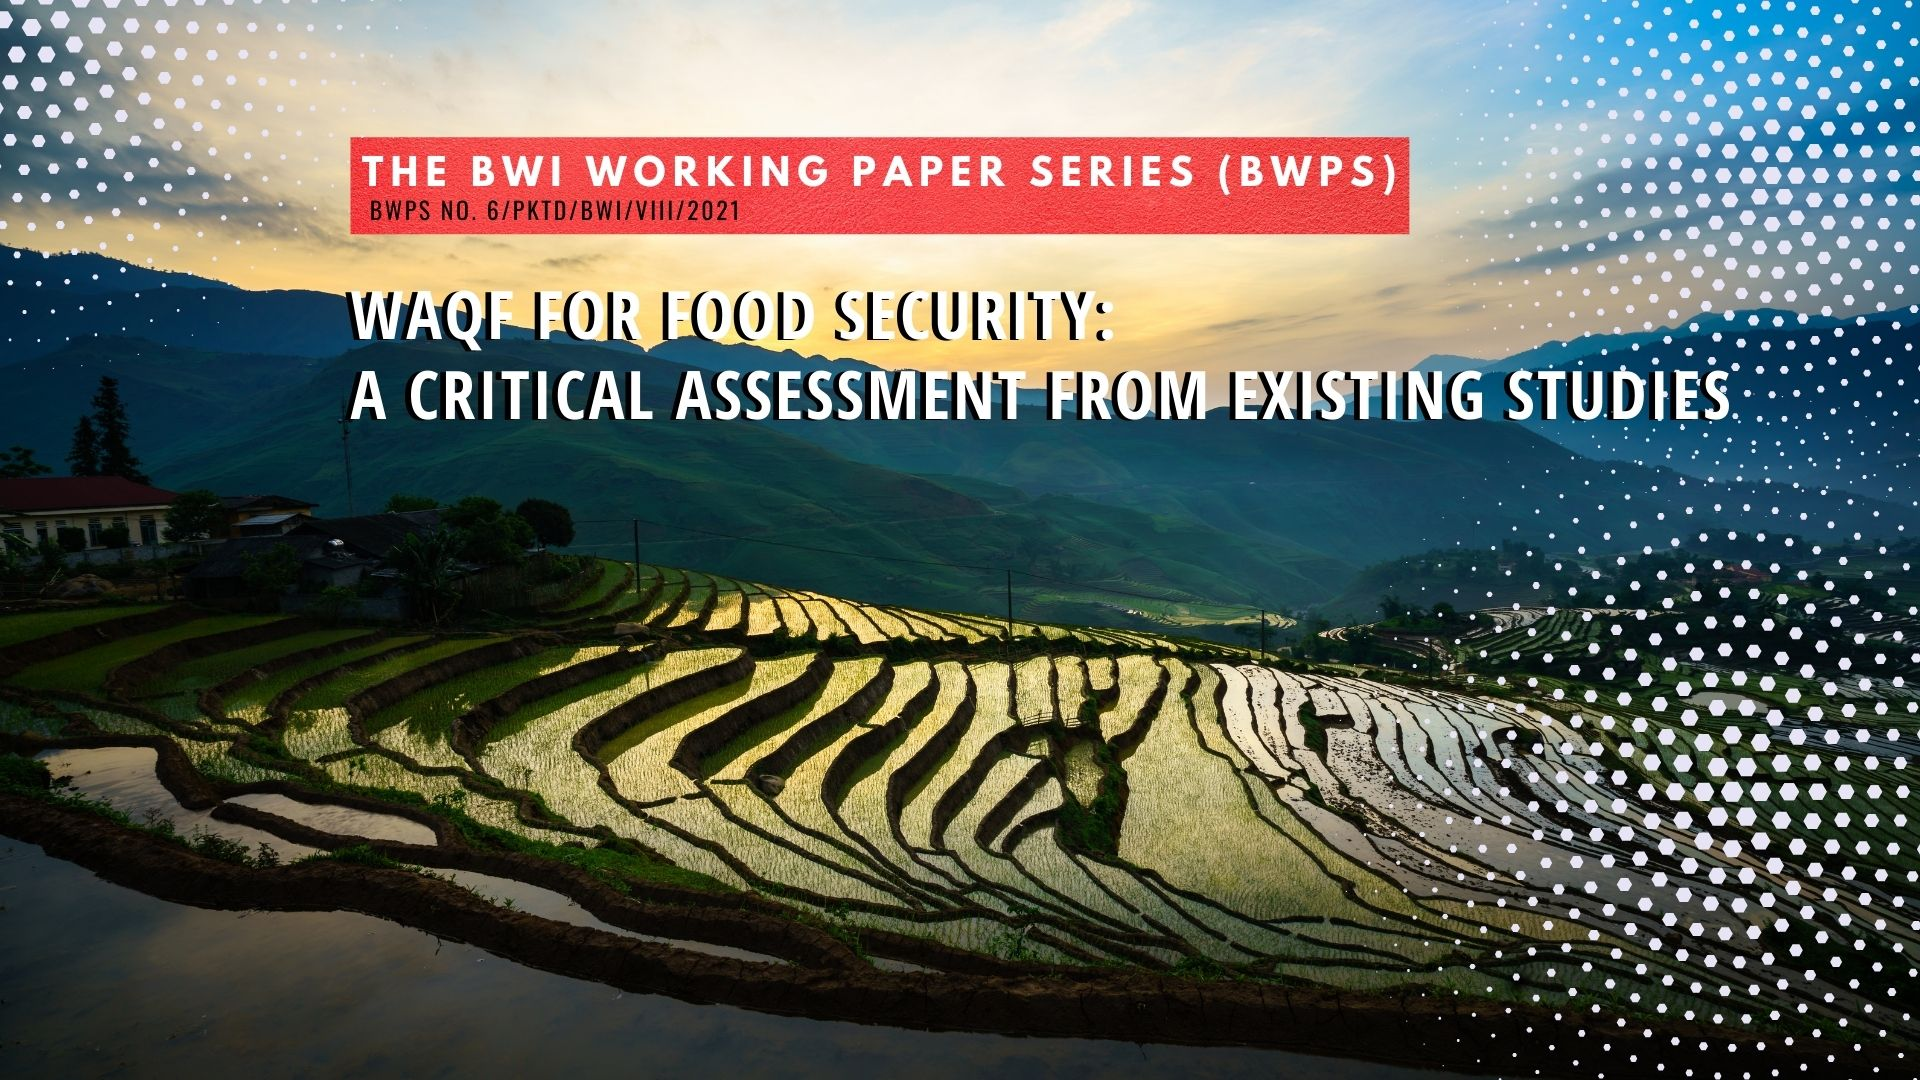 Waqf for Food Security:  A Critical Assessment from Existing Studies – BWPS No. 6 2021  - 20210825 The BWI Working Paper Series BWPS Series 6 August 2021 - Waqf for Food Security:  A Critical Assessment from Existing Studies – BWPS No. 6 2021